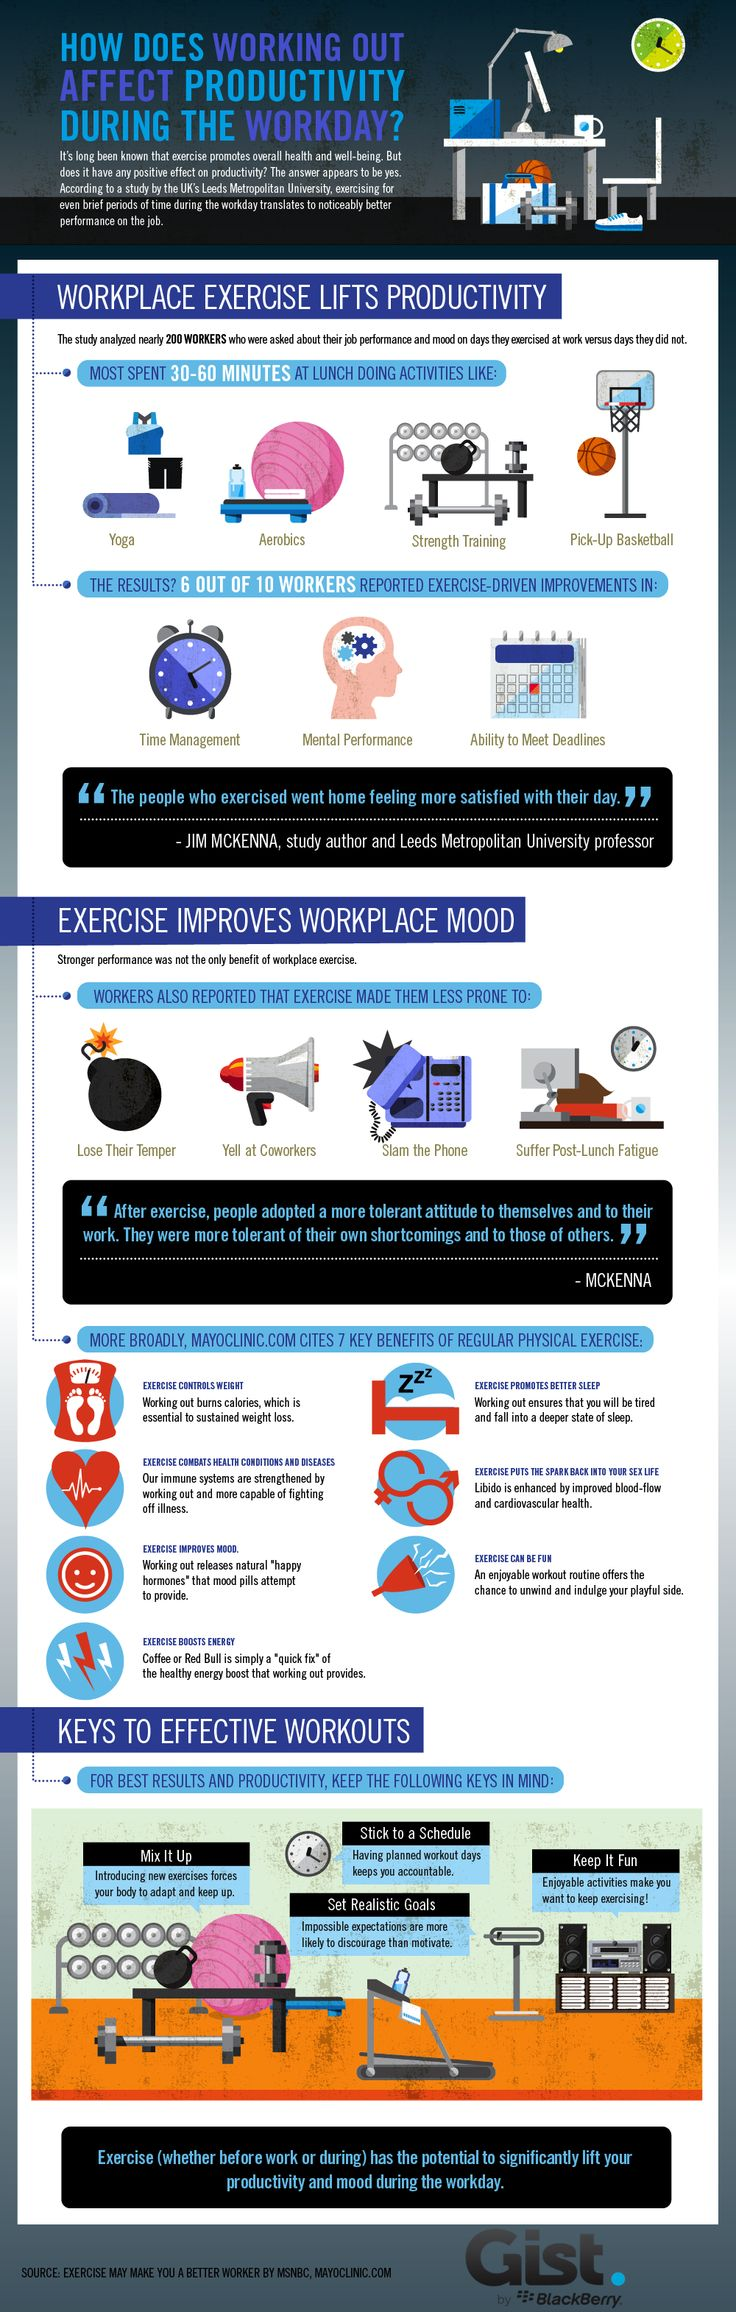 How Does Working Out Affect Productivity?    Putting in your hours at the gym will help you keep fit and reduce risk chronic illnesses.  But can regular workouts improve your business productivity too?    According to Jim McKenna, a research professor at Leeds Metropolitan University, six out of ten workers involved in a recent study reported exercise-driven improvements in time management, mental performance and their ability to meet deadlines.